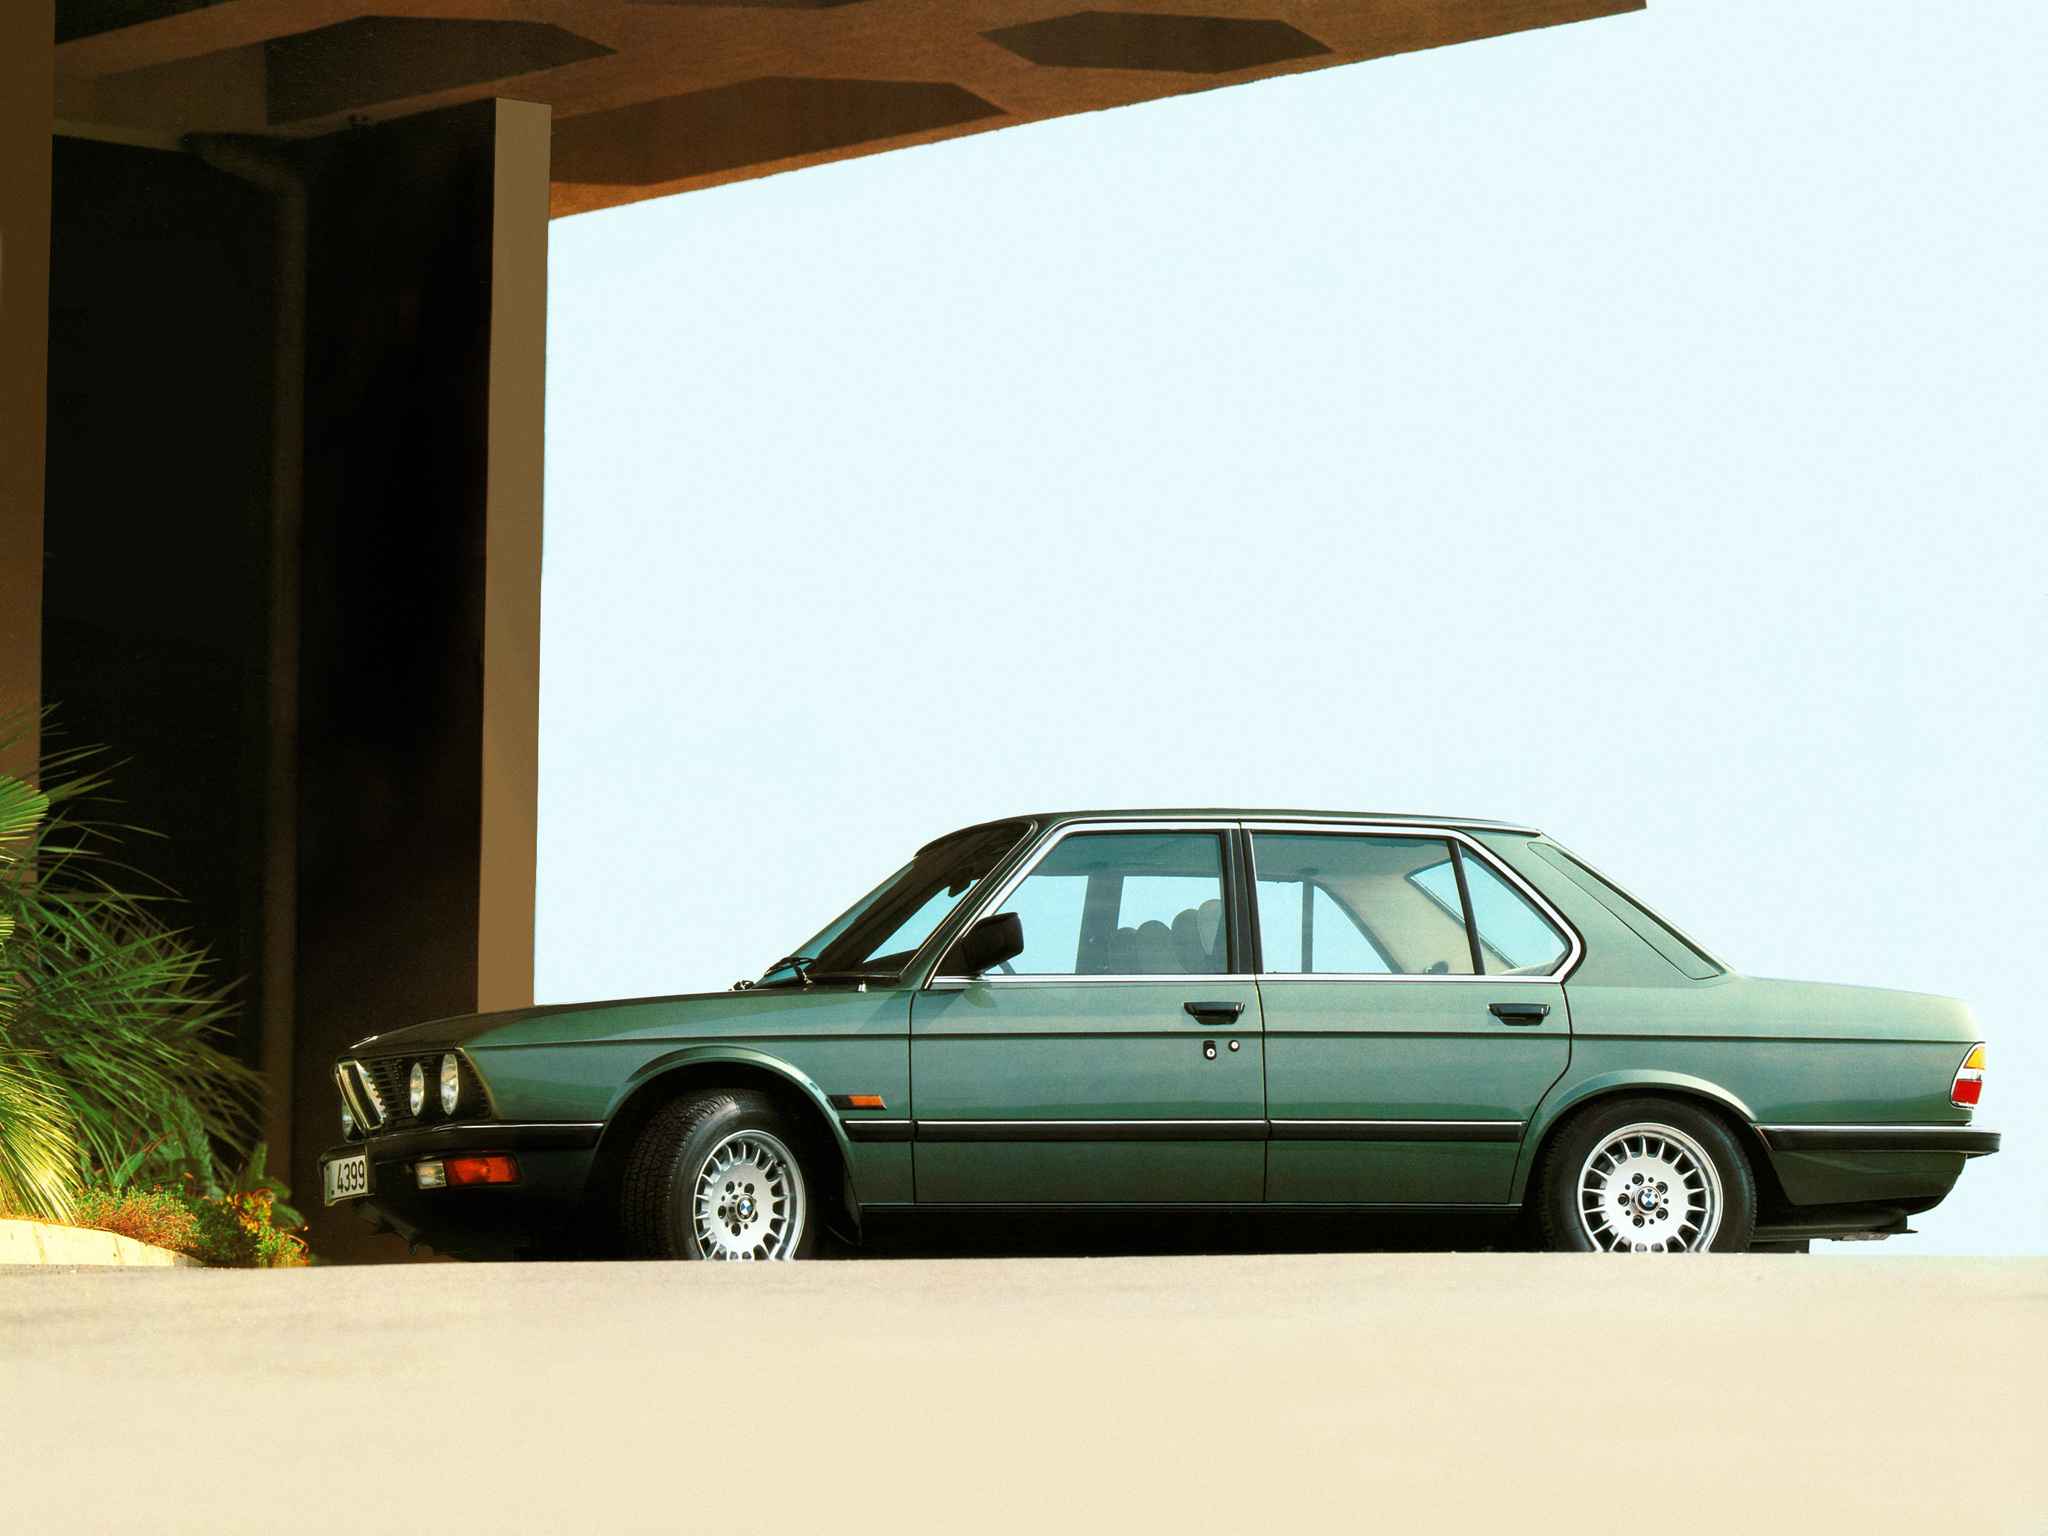 BMW 5 series 520i 1981 photo - 9